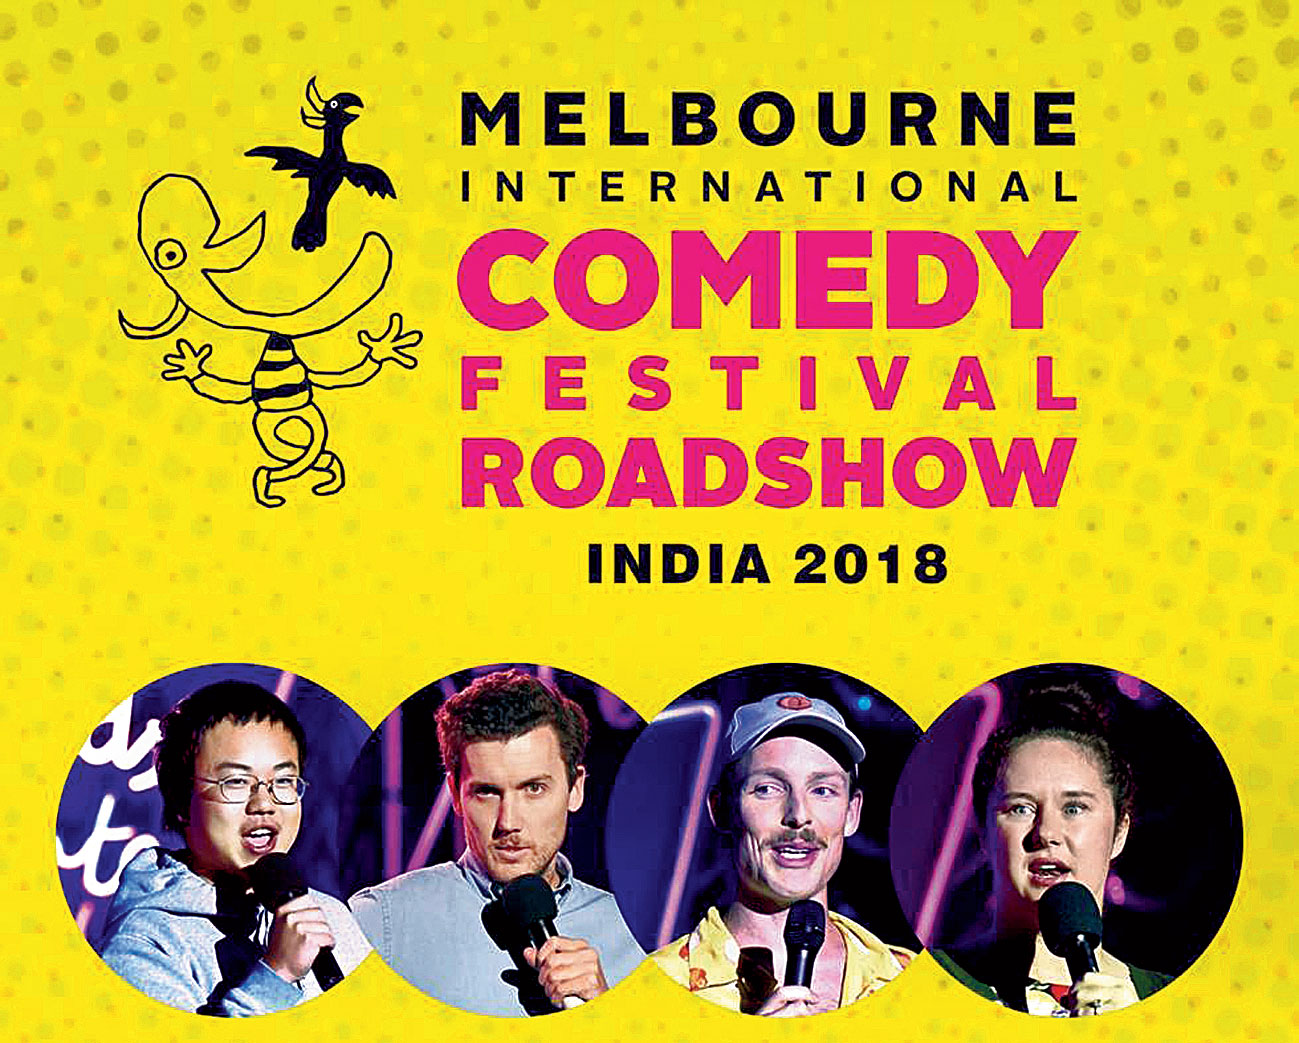 A poster of the comedy festival